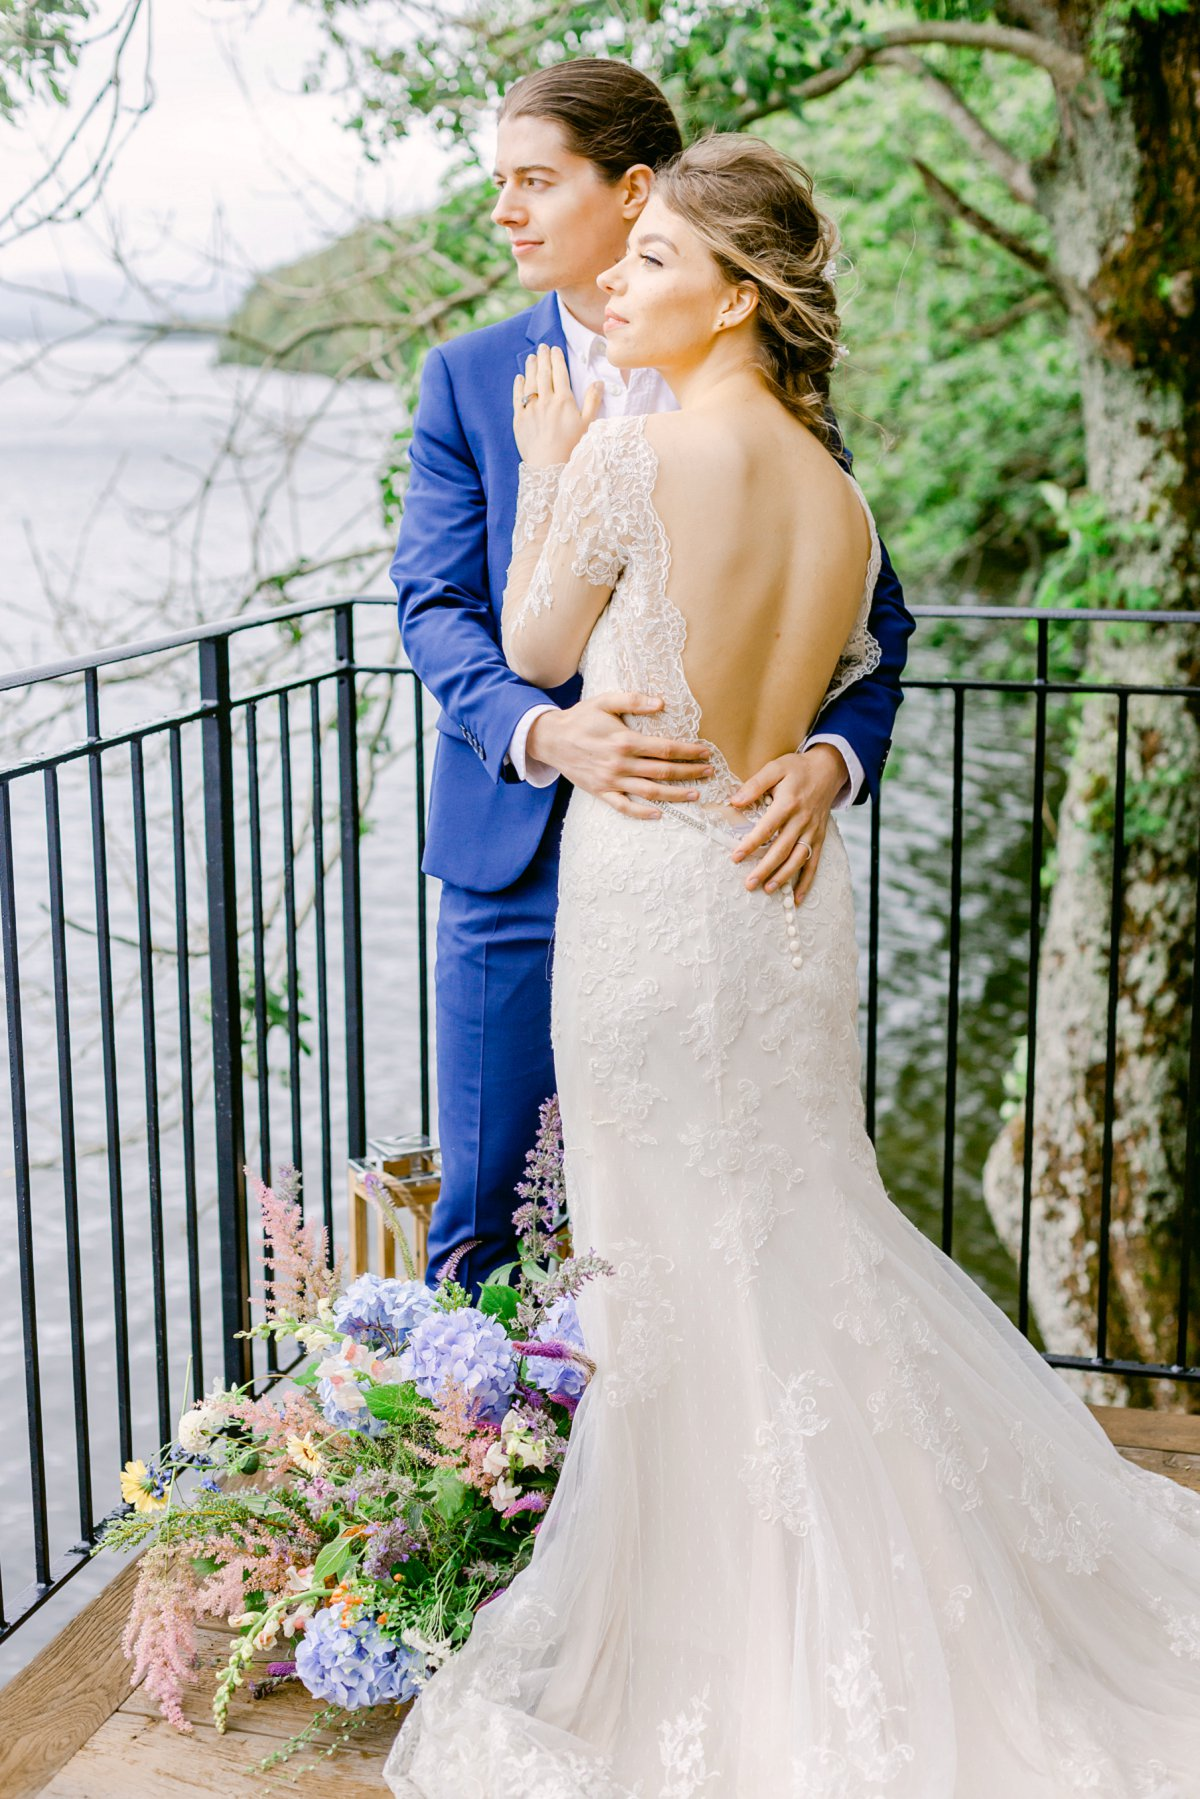 A Styled Wedding Shoot at Town Head Estate Windermere (c) Ailsa Reeve Photography (31)